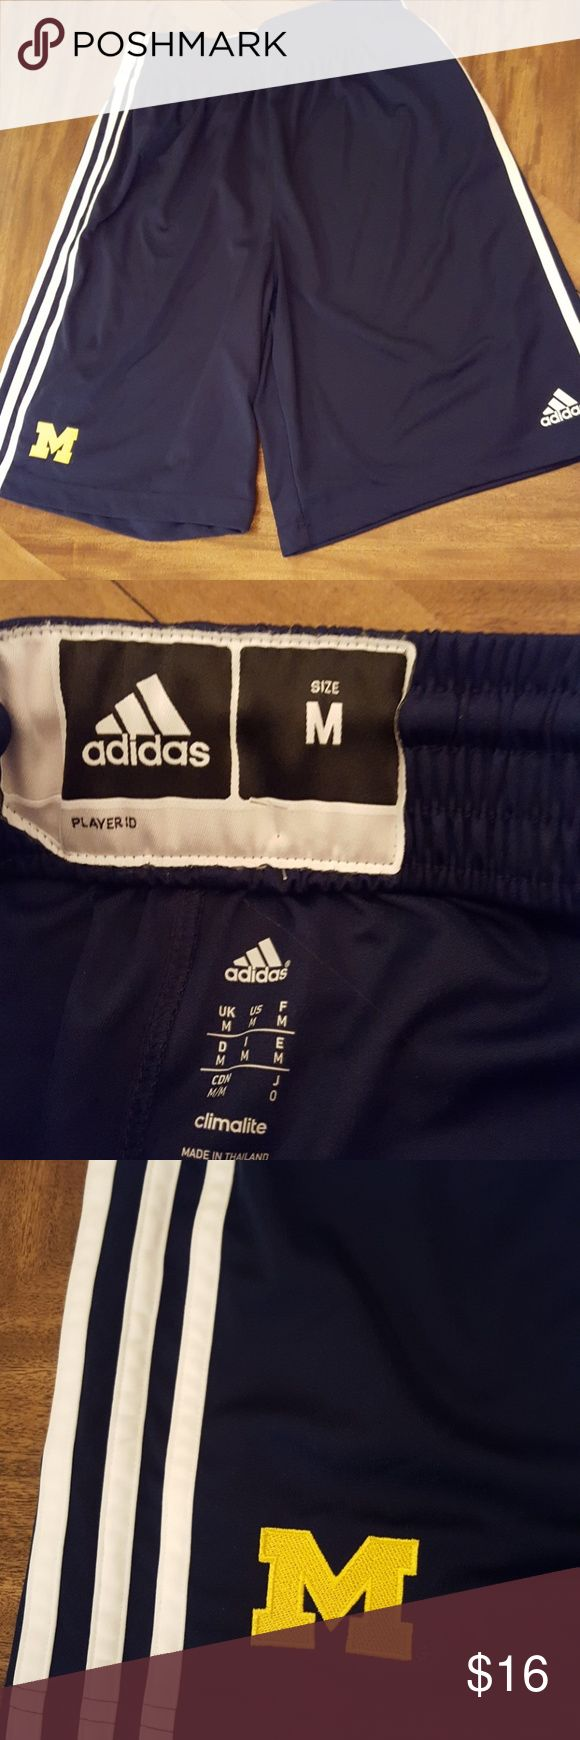 Adidas Michigan Shorts Basketball Adidas Climalite University of Michigan Shorts. Navy. Team issued. Perfect brand new condition. Drawstring.  Never worn. Adidas Shorts Athletic